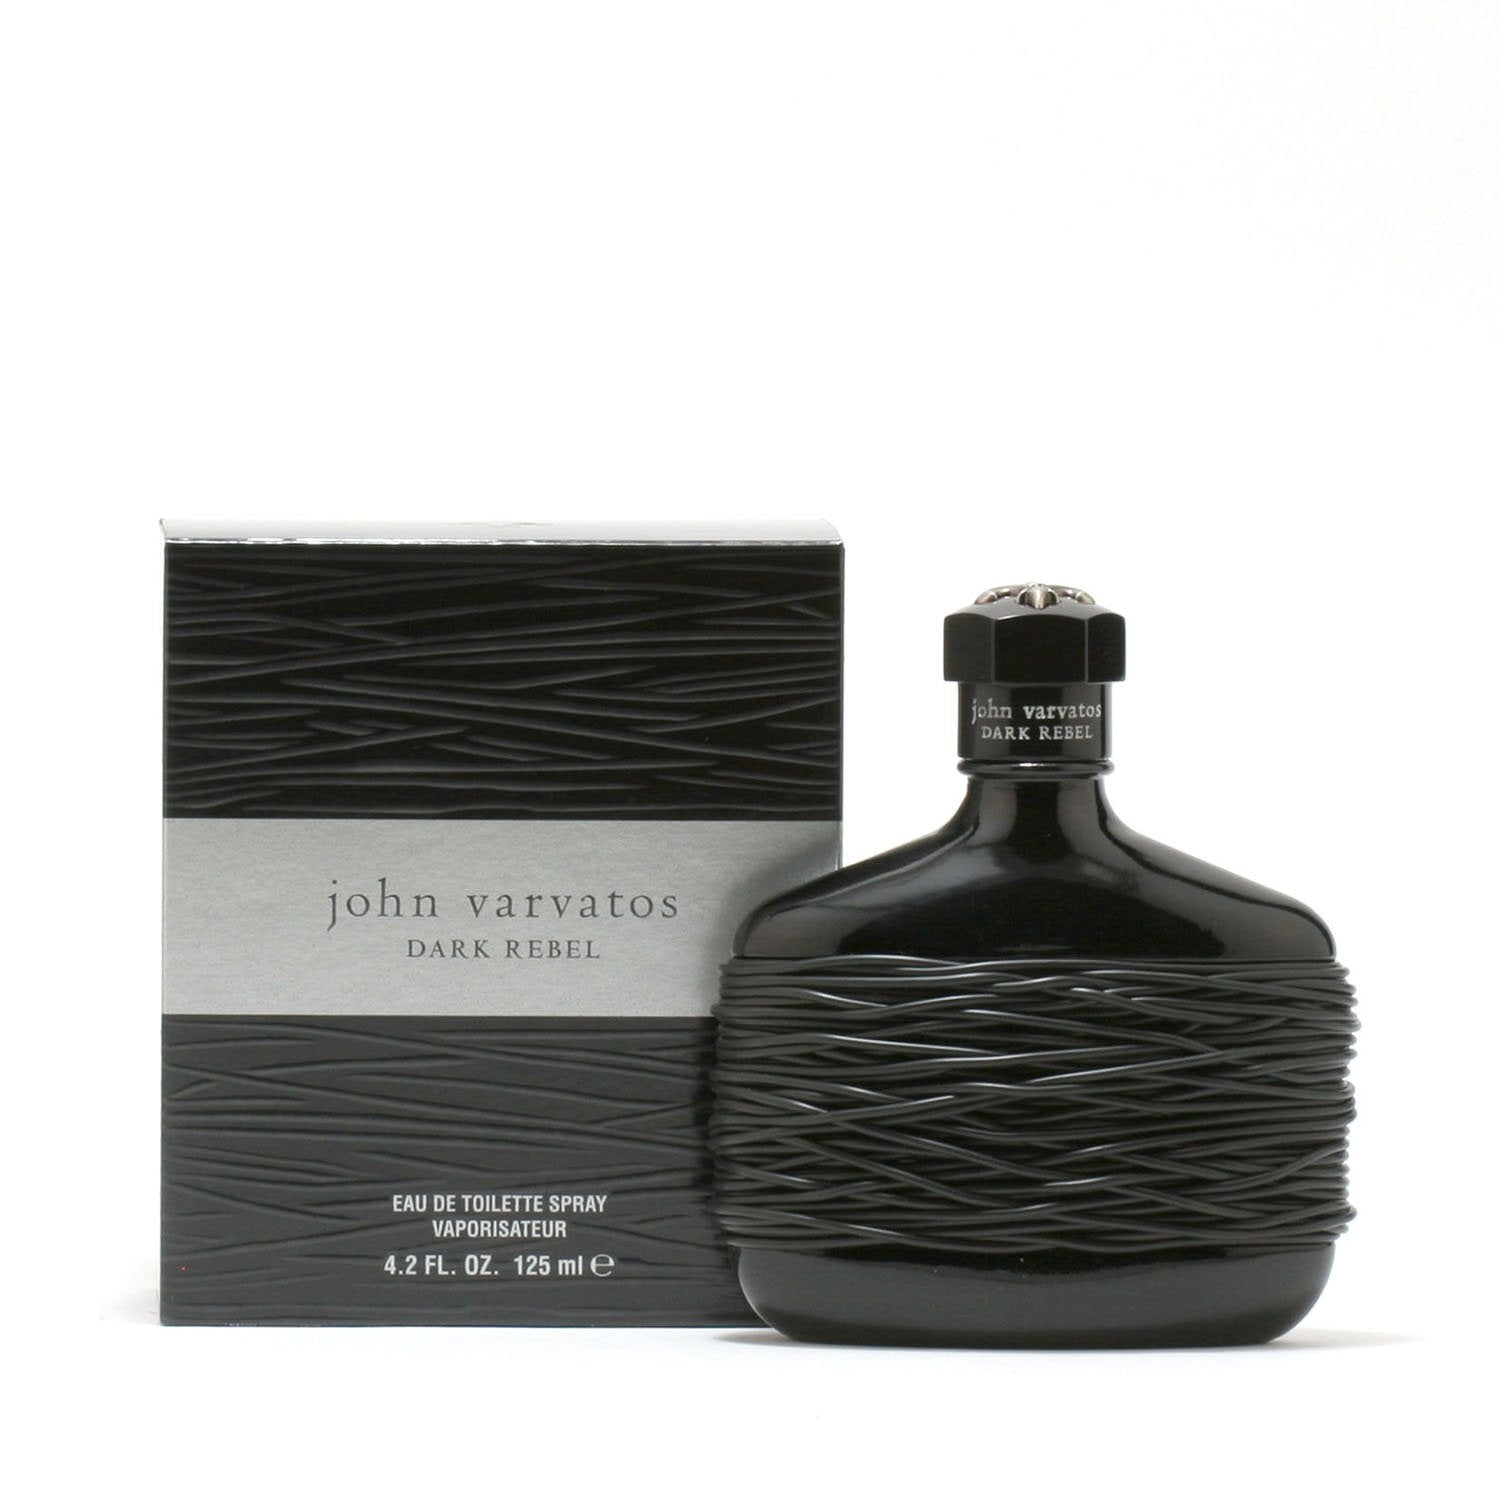 Cologne - DARK REBEL FOR MEN BY JOHN VARVATOS - EAU DE TOILETTE SPRAY